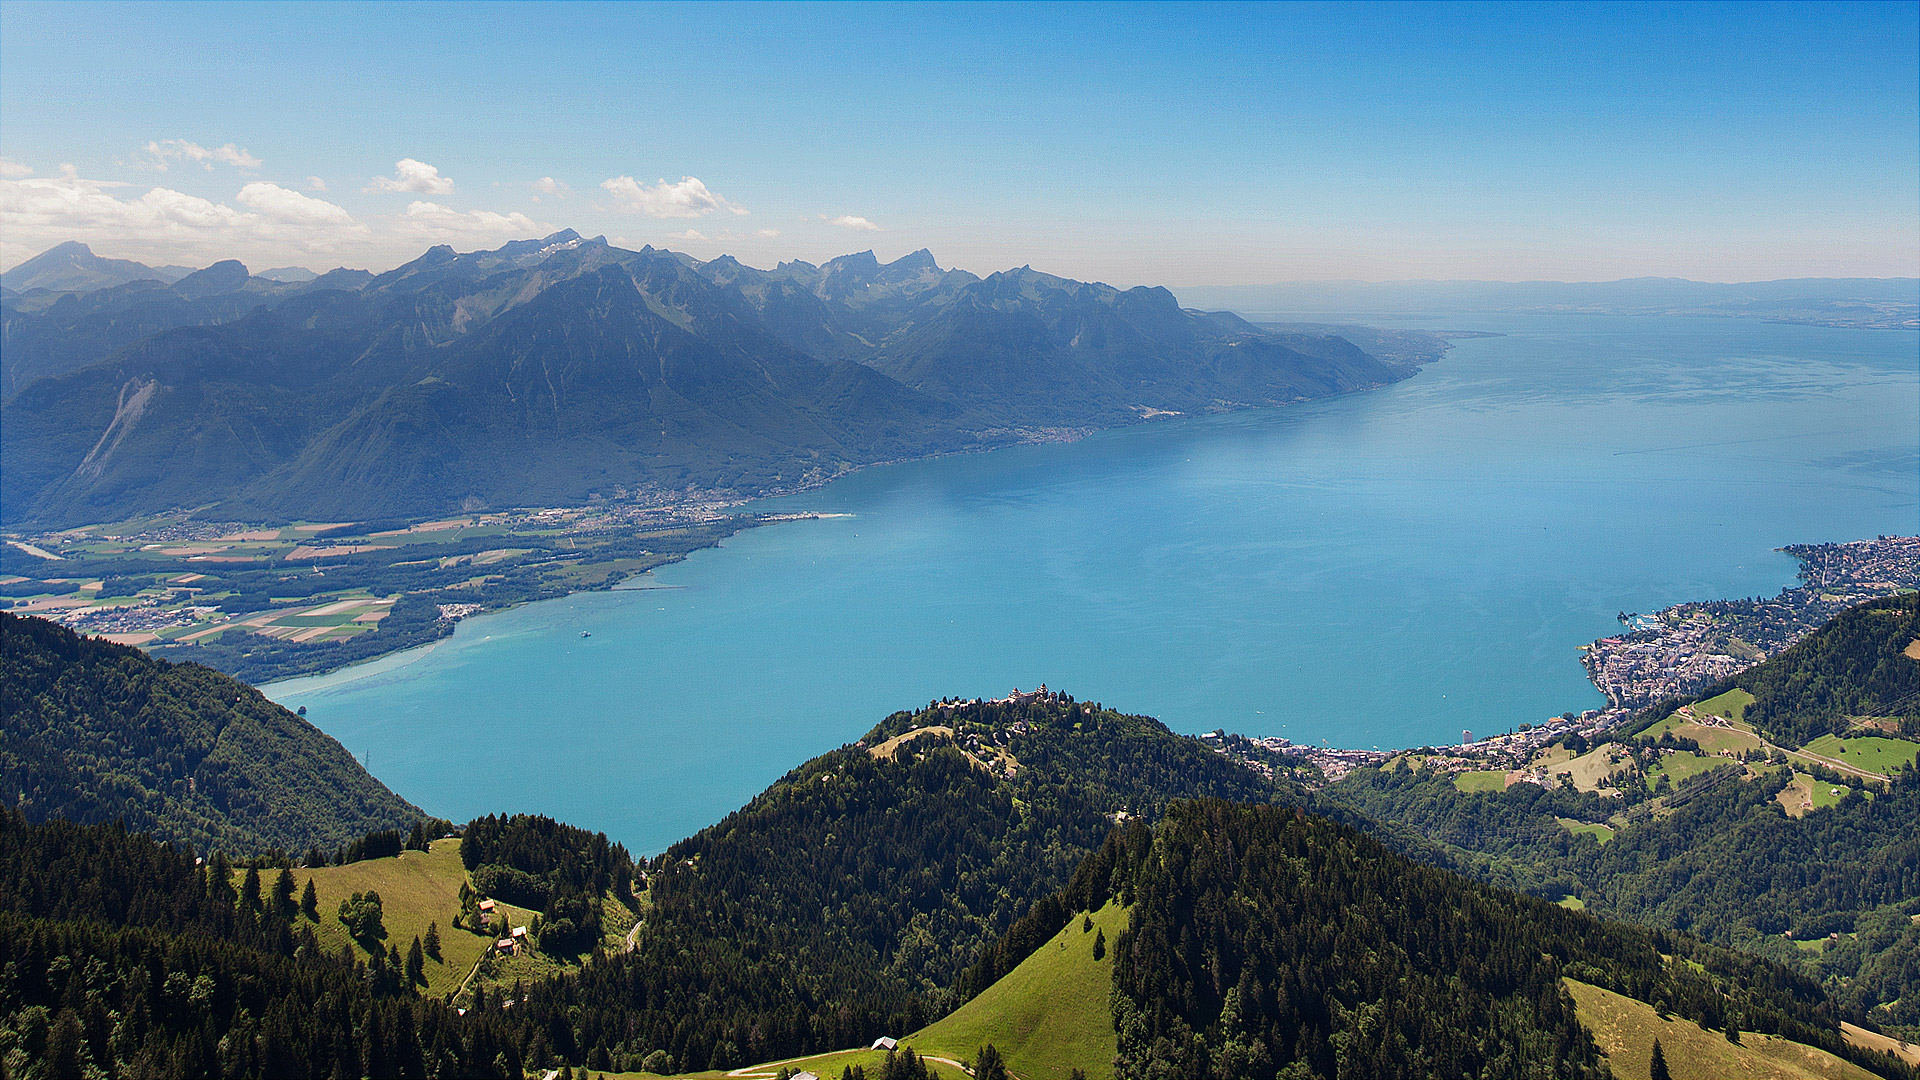 Rochers de Naye,things to do in Montreux